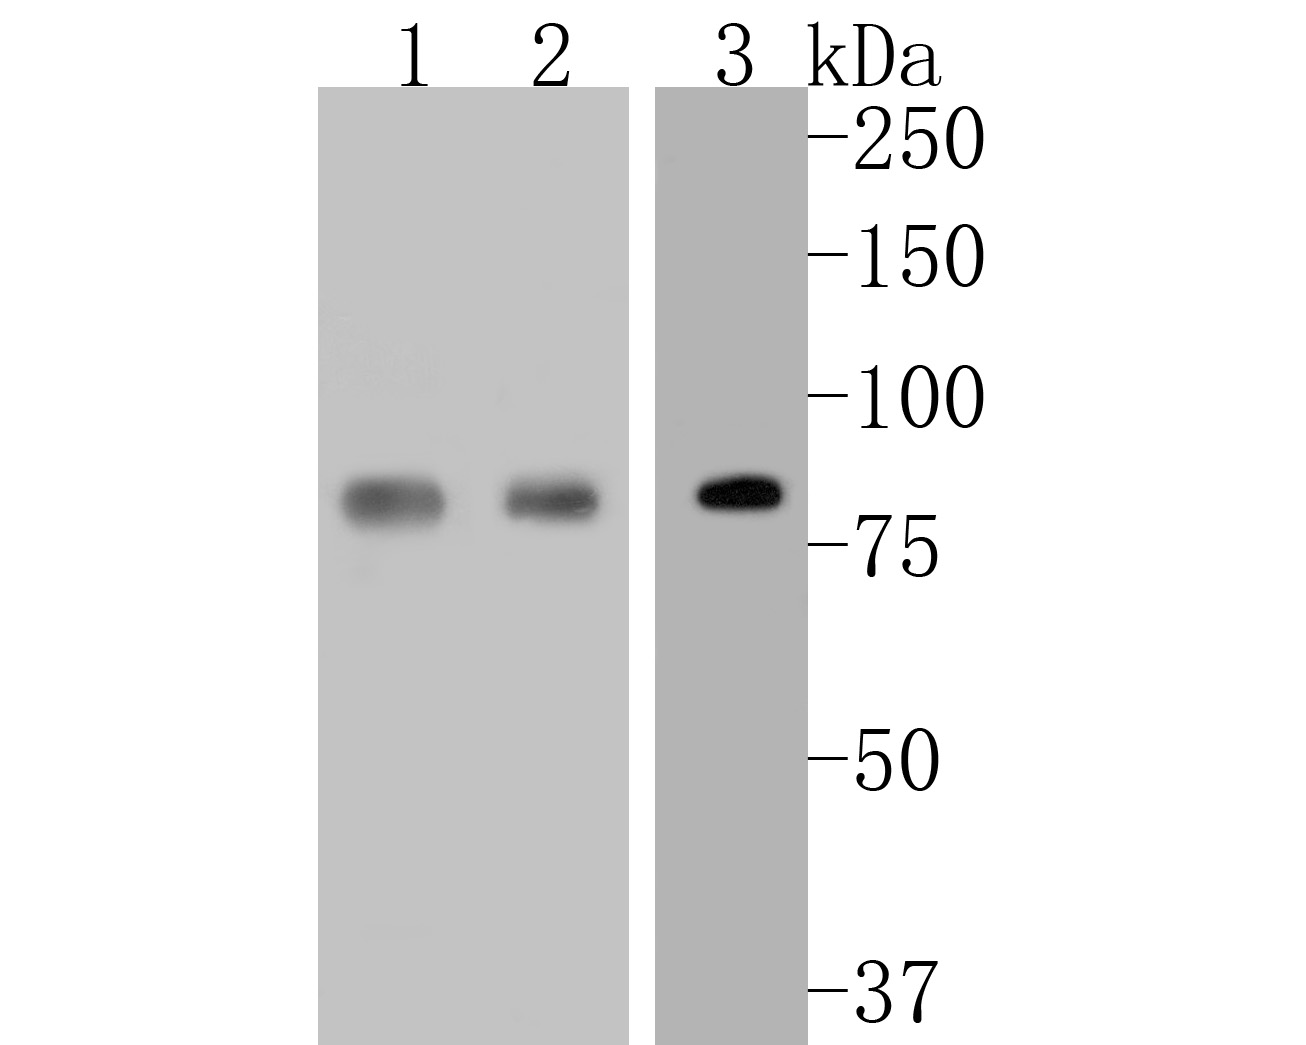 Western blot analysis of STAT3 on different lysates. Proteins were transferred to a PVDF membrane and blocked with 5% BSA in PBS for 1 hour at room temperature. The primary antibody (ET1605-45, 1/500) was used in 5% BSA at room temperature for 2 hours. Goat Anti-Rabbit IgG - HRP Secondary Antibody (HA1001) at 1:5,000 dilution was used for 1 hour at room temperature.<br />  Positive control: <br />  Lane 1: MCF-7 cell lysate<br />  Lane 2: SiHa cell lysate<br />  Lane 3: A549 cell lysate